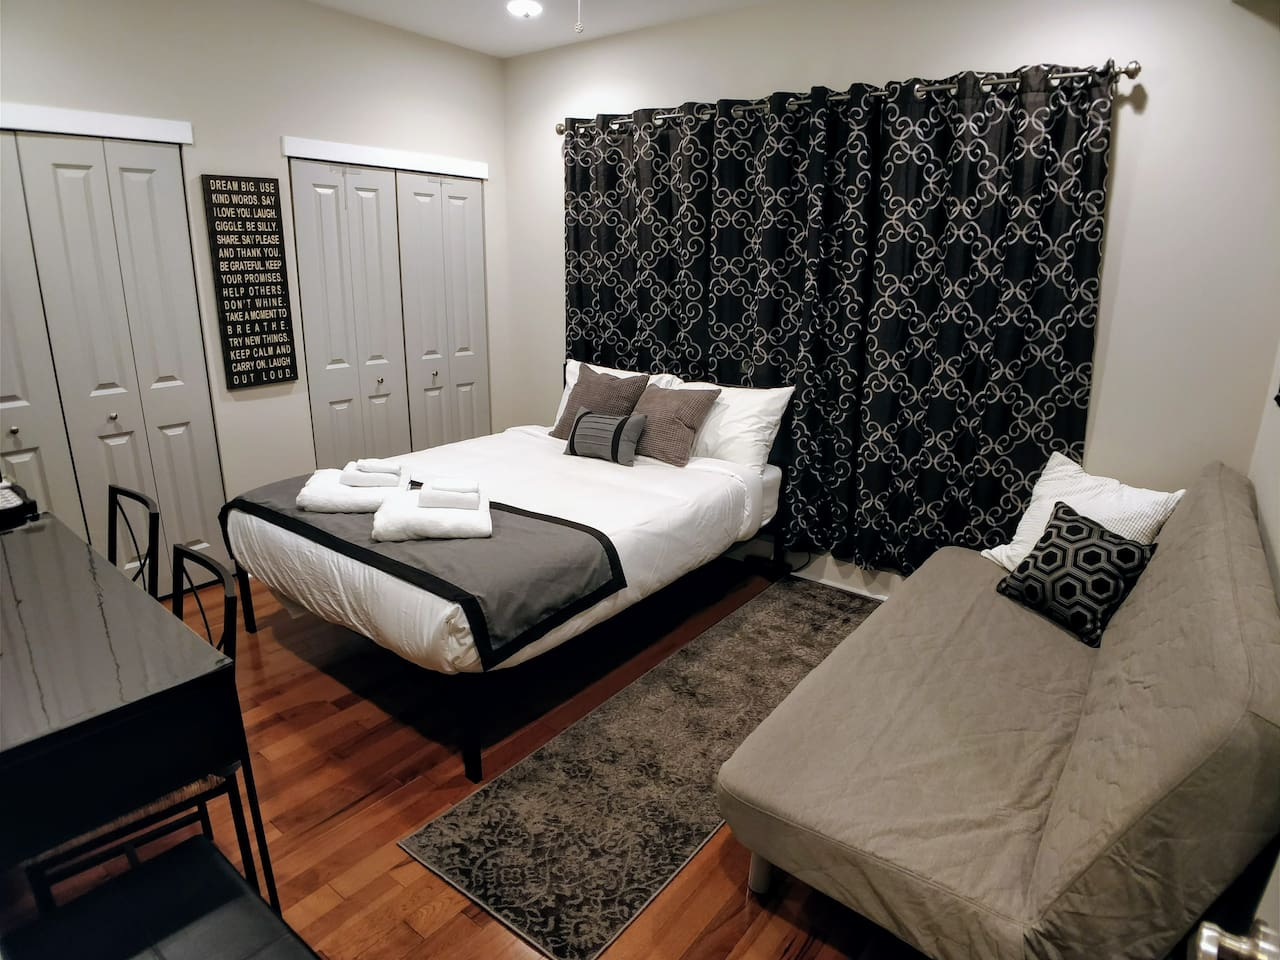 Spacious bedroom with queen size bed and sofa